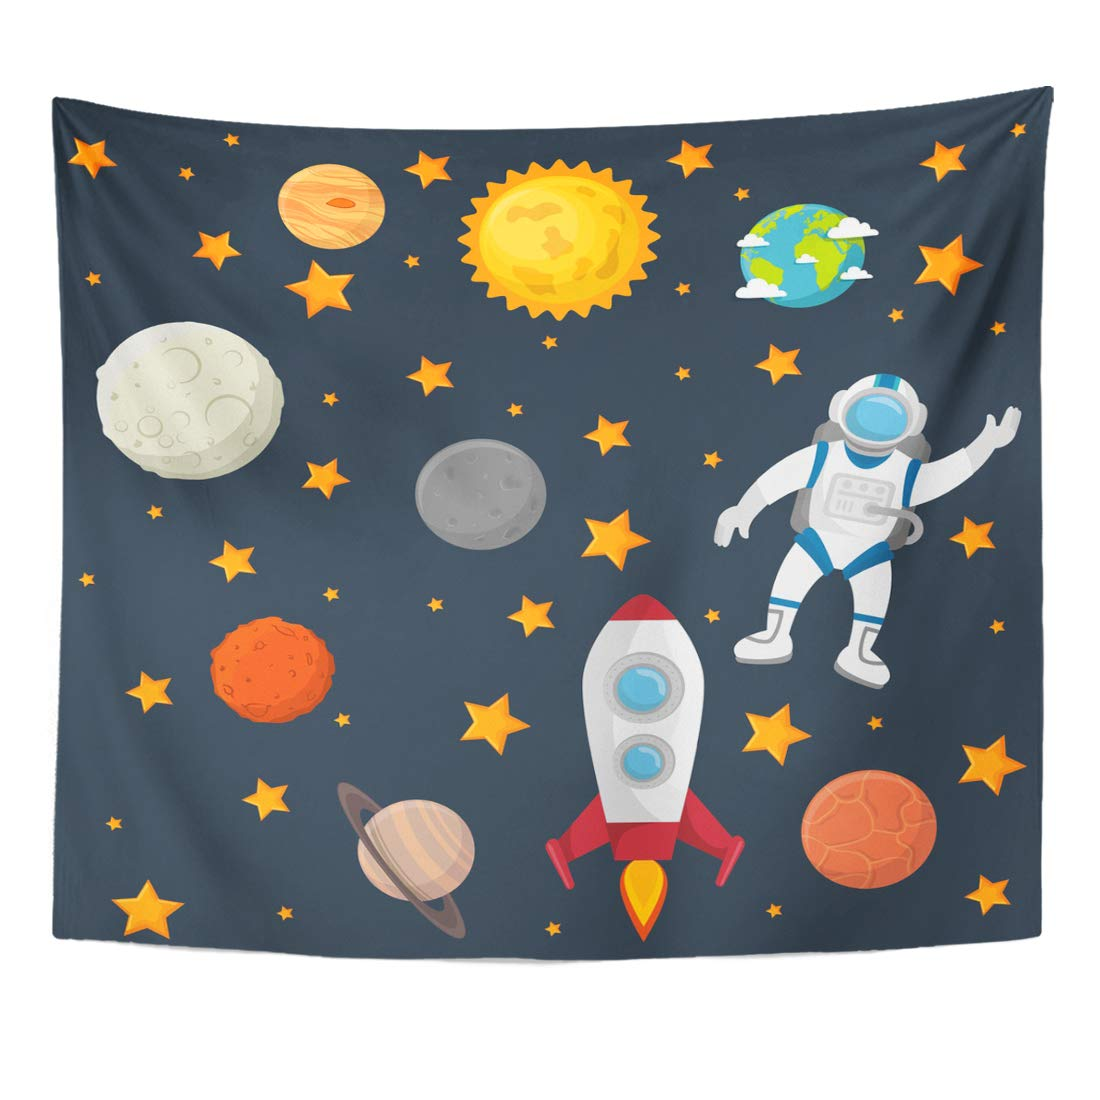 Emvency Tapestry Solar Colorful Flat Universe Planets Space Mission System Astronomy Home Decor Wall Hanging for Living Room Bedroom Dorm 60x80 Inches